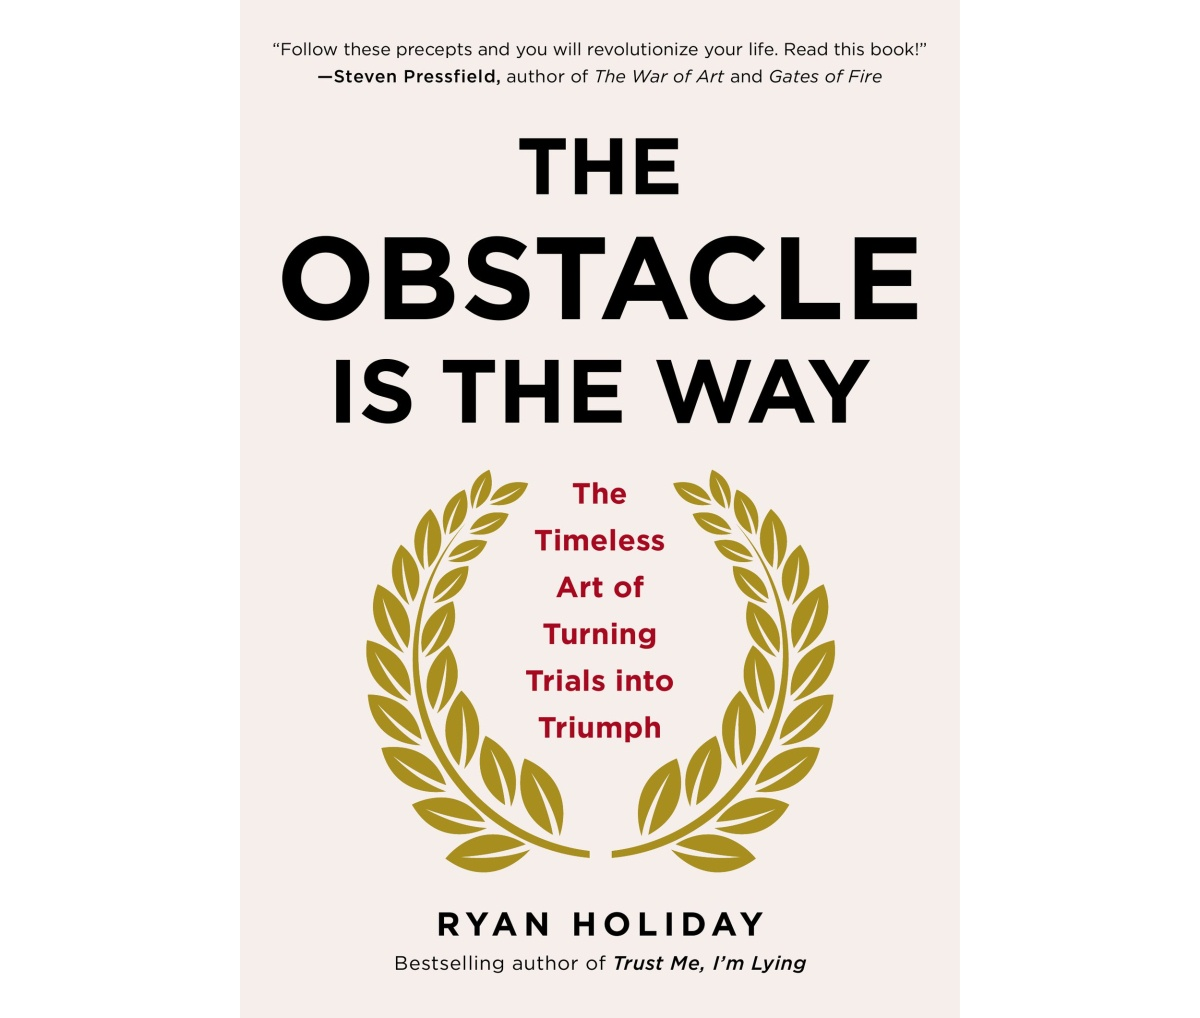 'The Obstacle is the Way' by Ryan Holiday